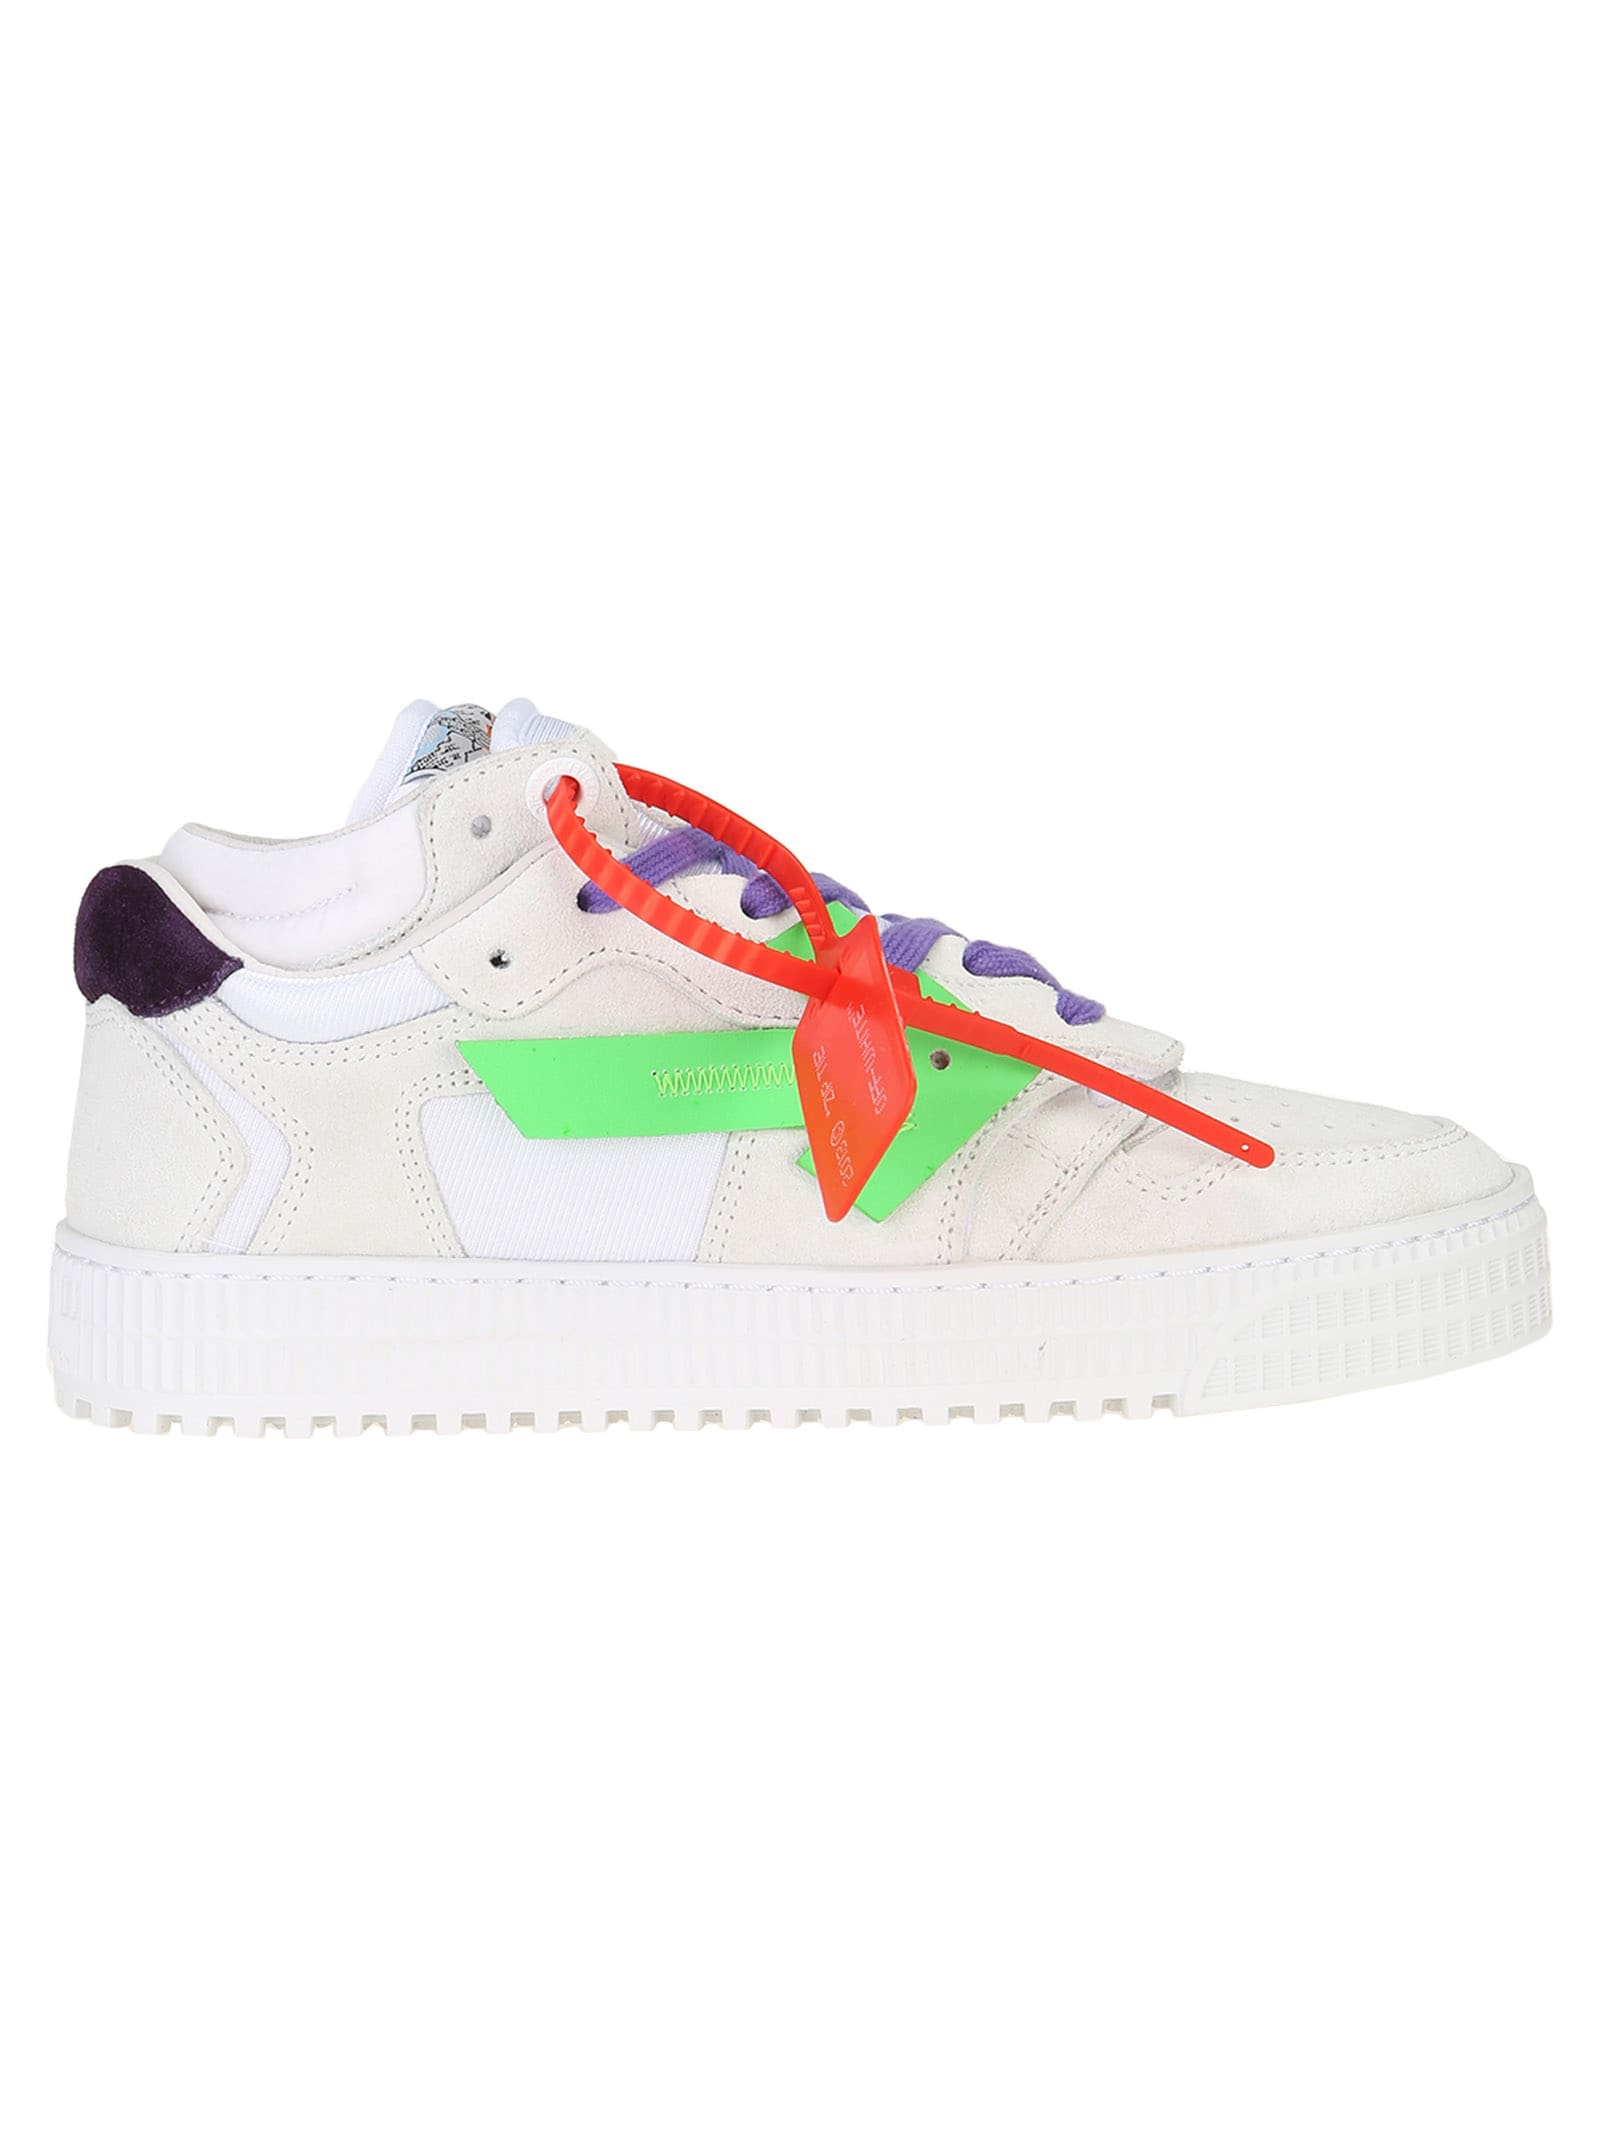 OFF-WHITE OFF WHITE OFF-COURT LOW-TOP SNEAKERS